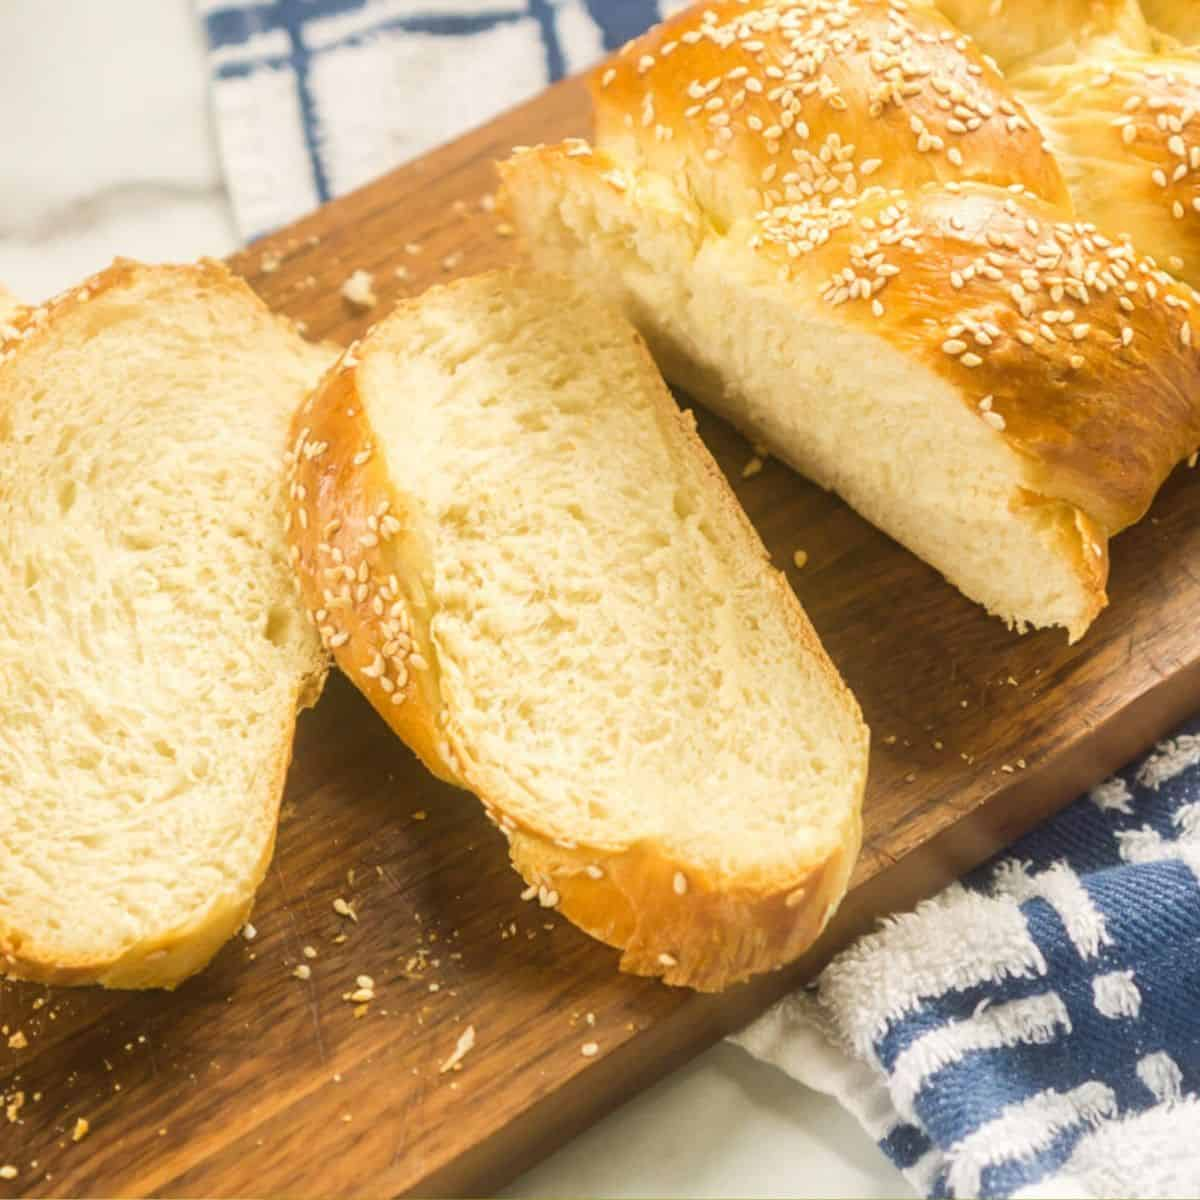 slices of soft and fluffy Italian bread